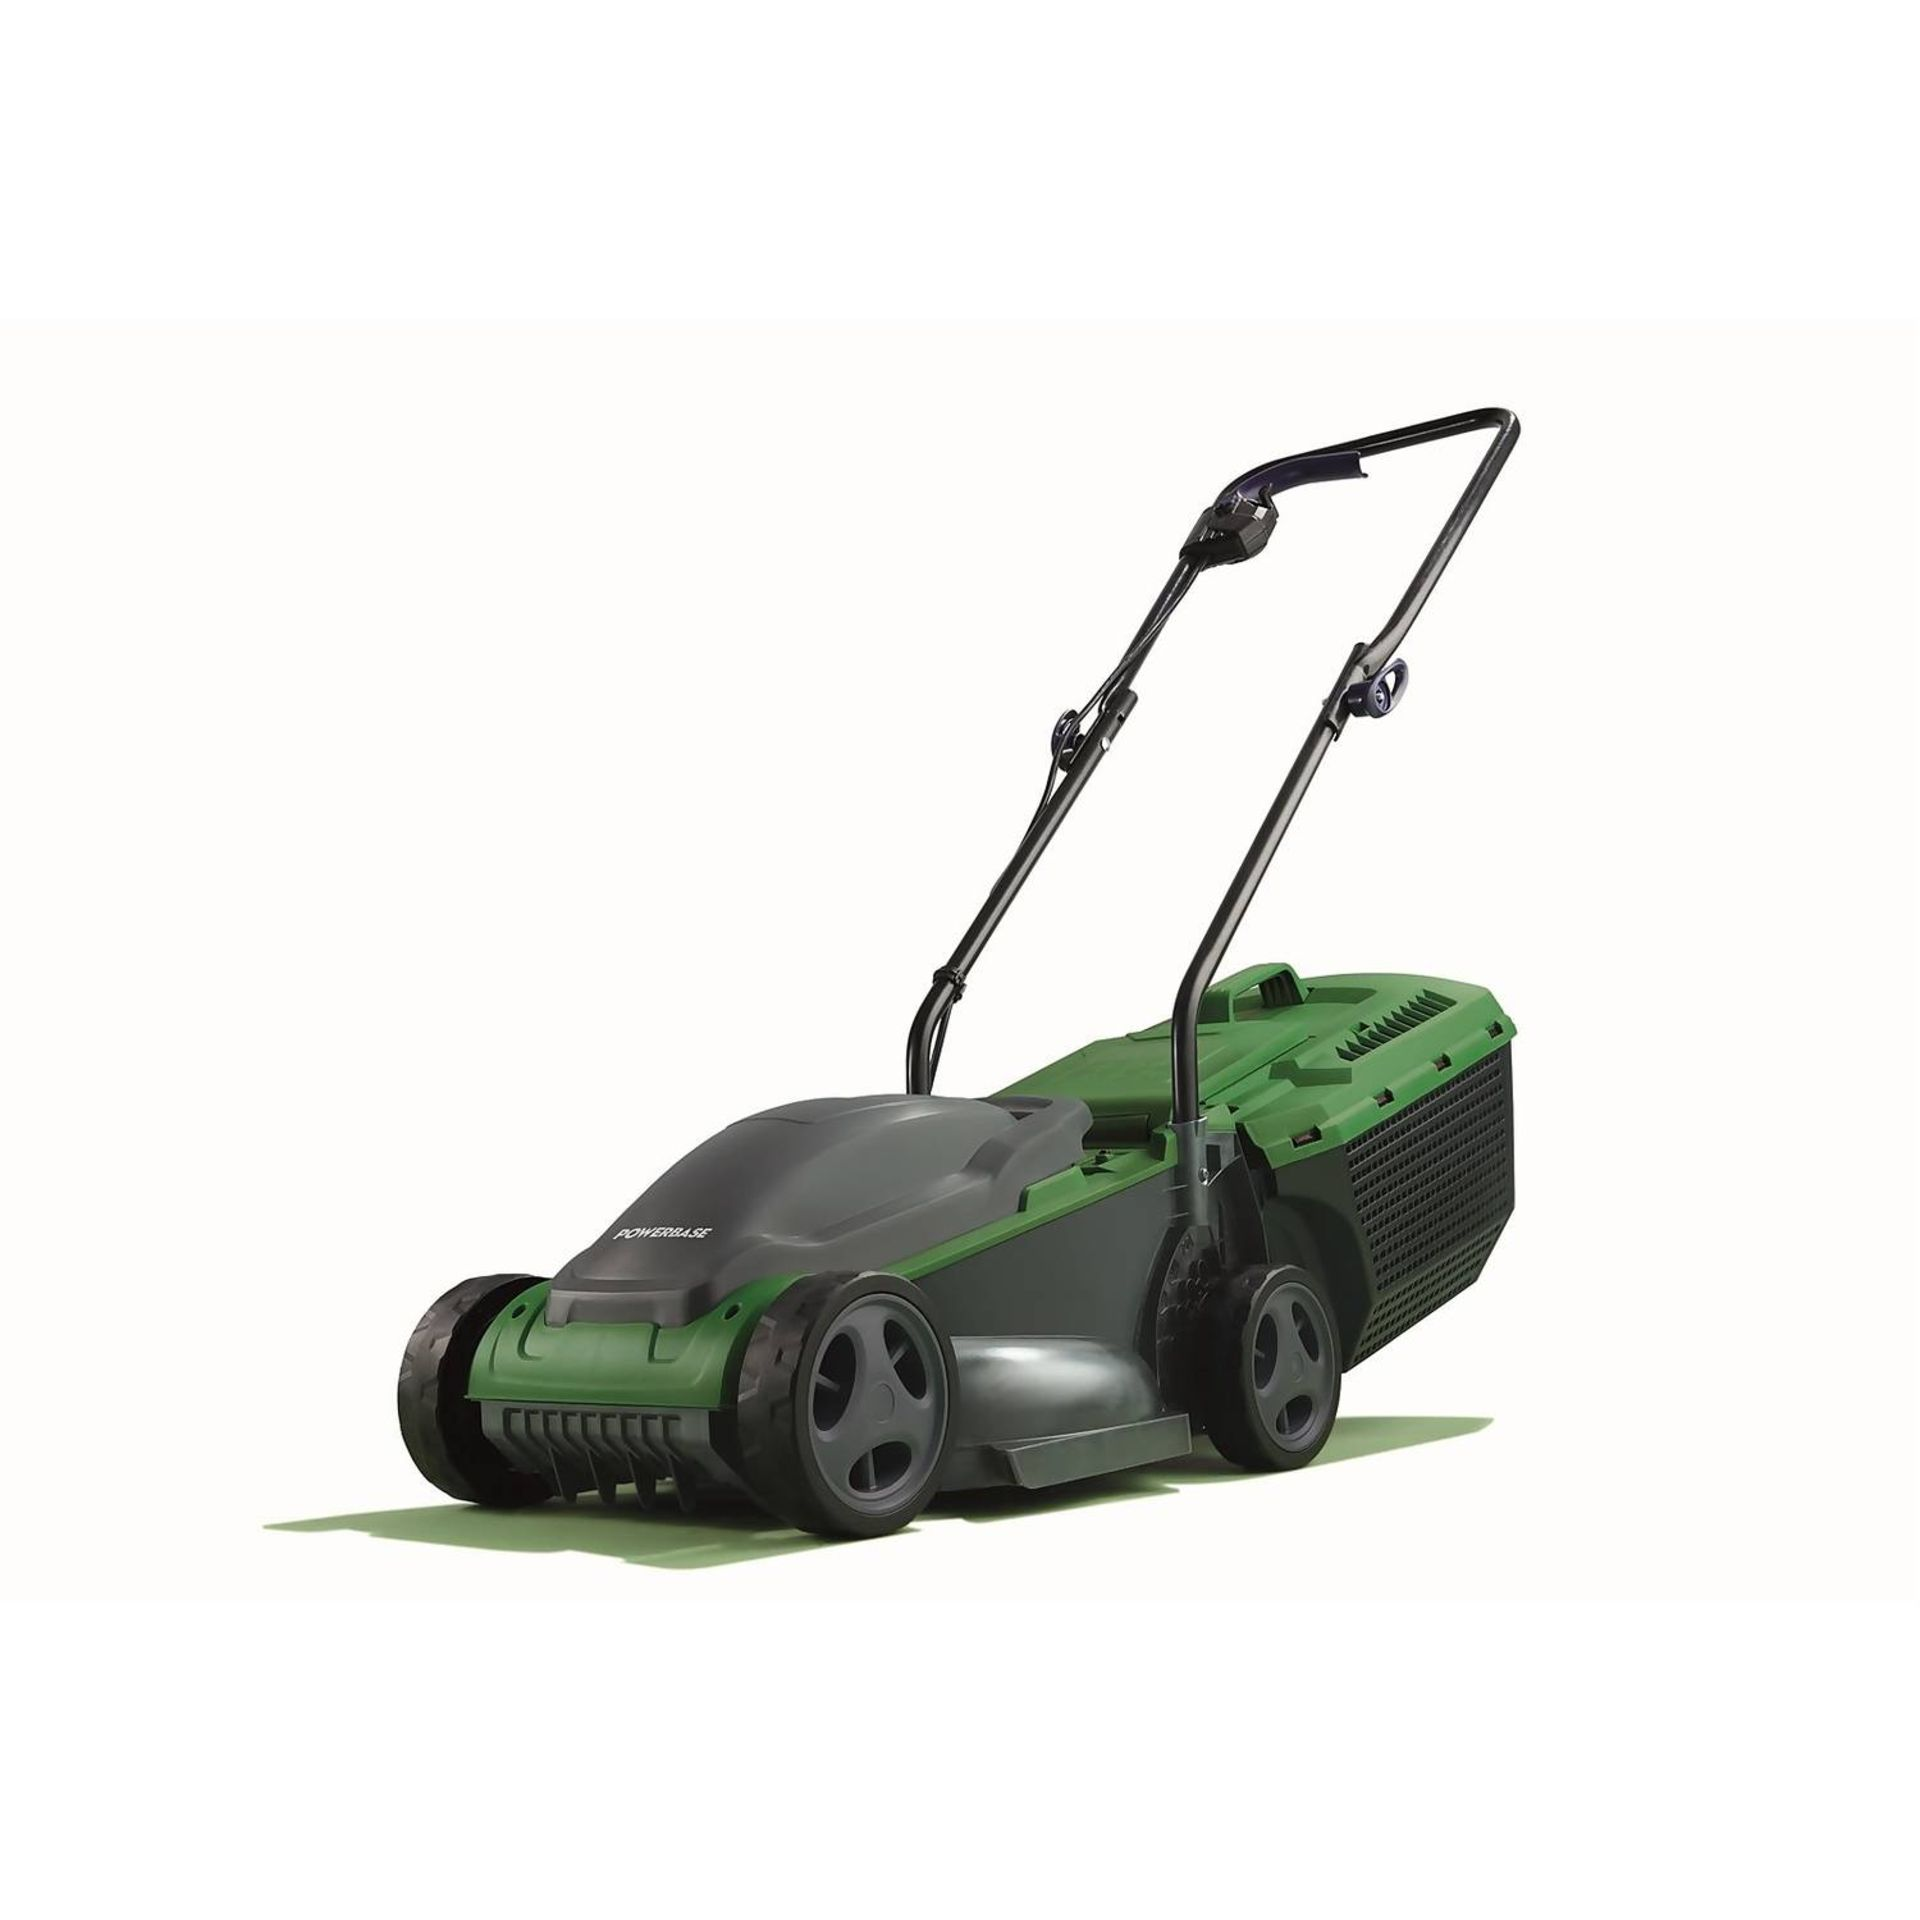 (P7) 1x Sovereign 32cm 1200W Electric Rotary Lawn Mower RRP £50. New, Sealed Unit With Very Slight